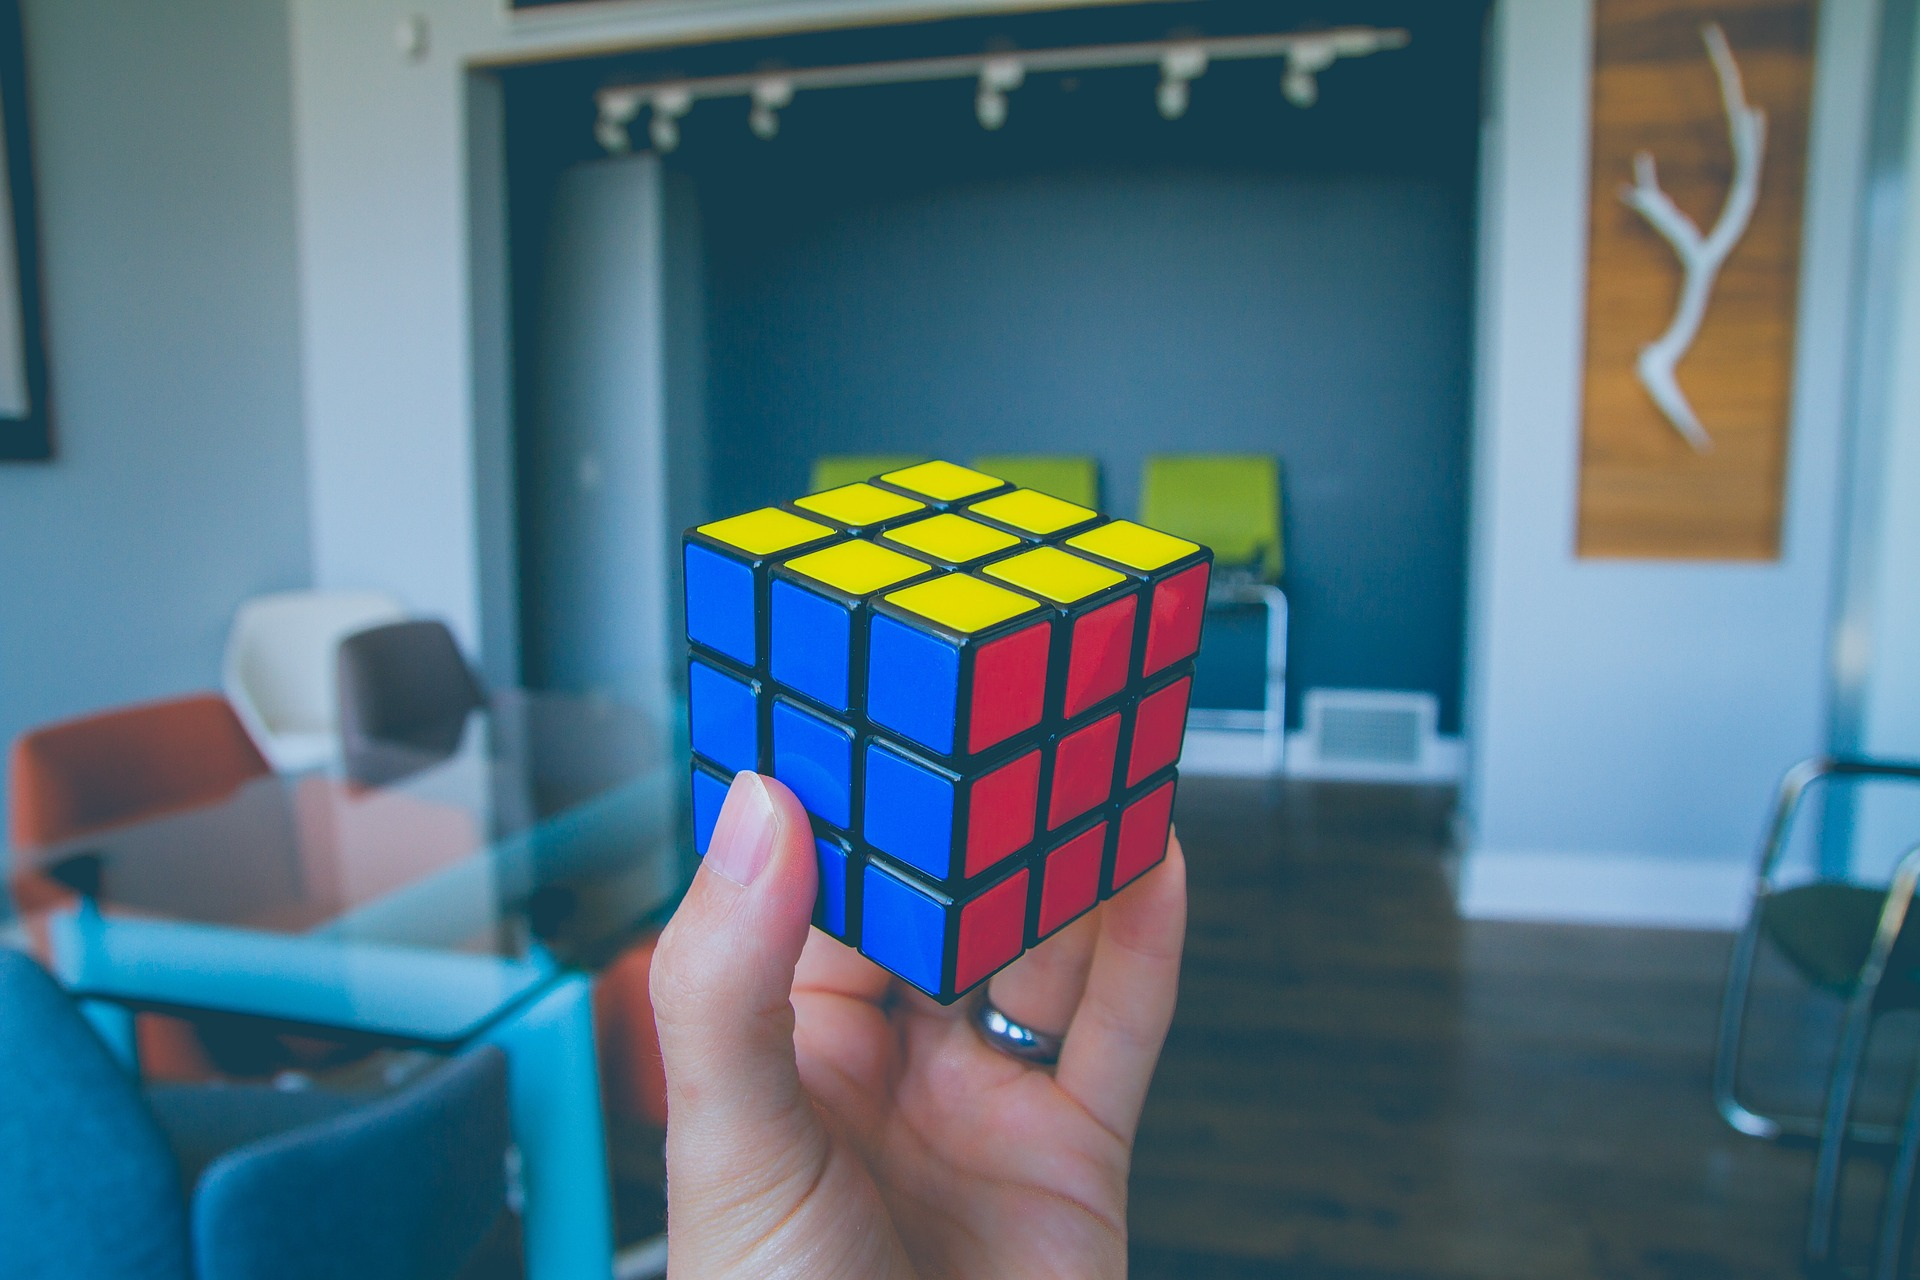 Loss of 3D EU Trade Mark for Rubik's Cube